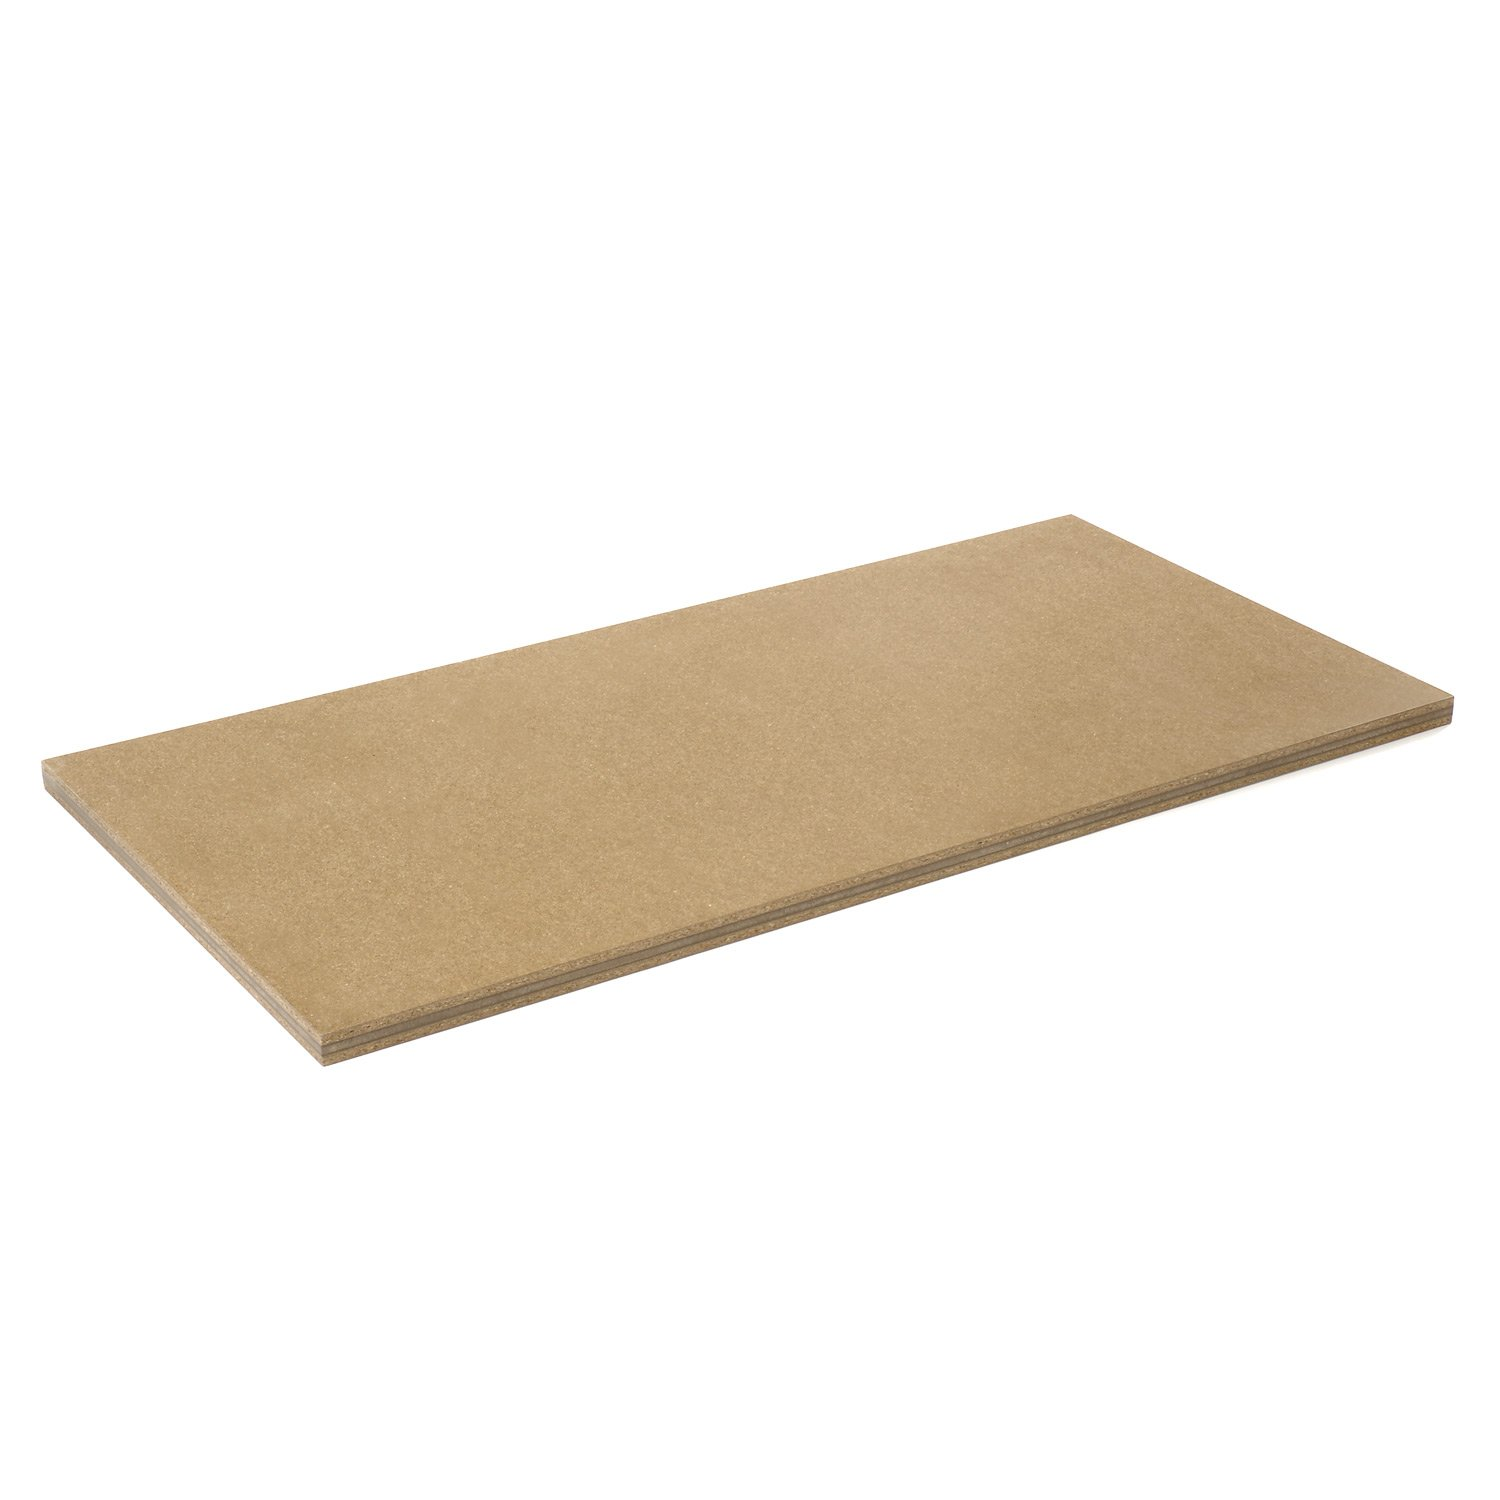 Nexel BTS730 Shop Top Safety Edge Bench Tops, 72'' Length x 30'' Width, 1-3/4'' Thickness, Wood